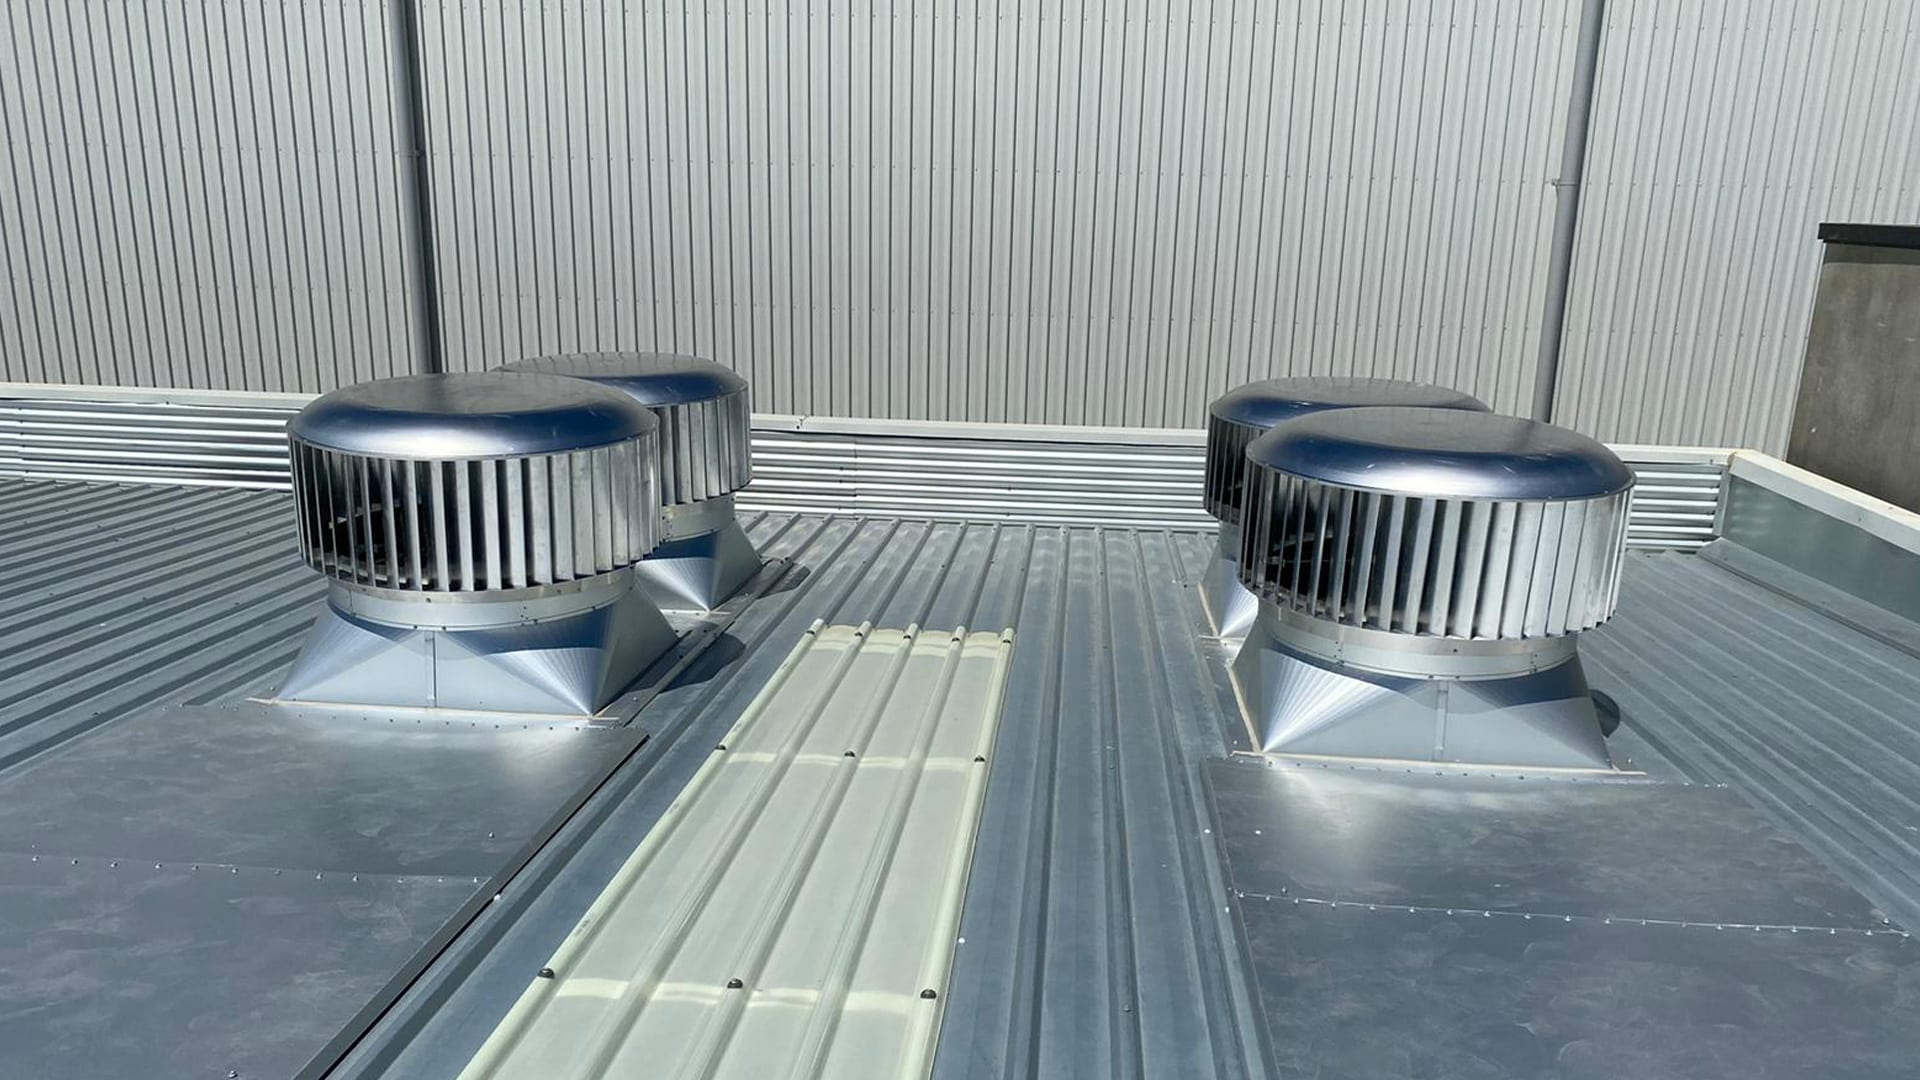 New Commercial Roof Vents Installed